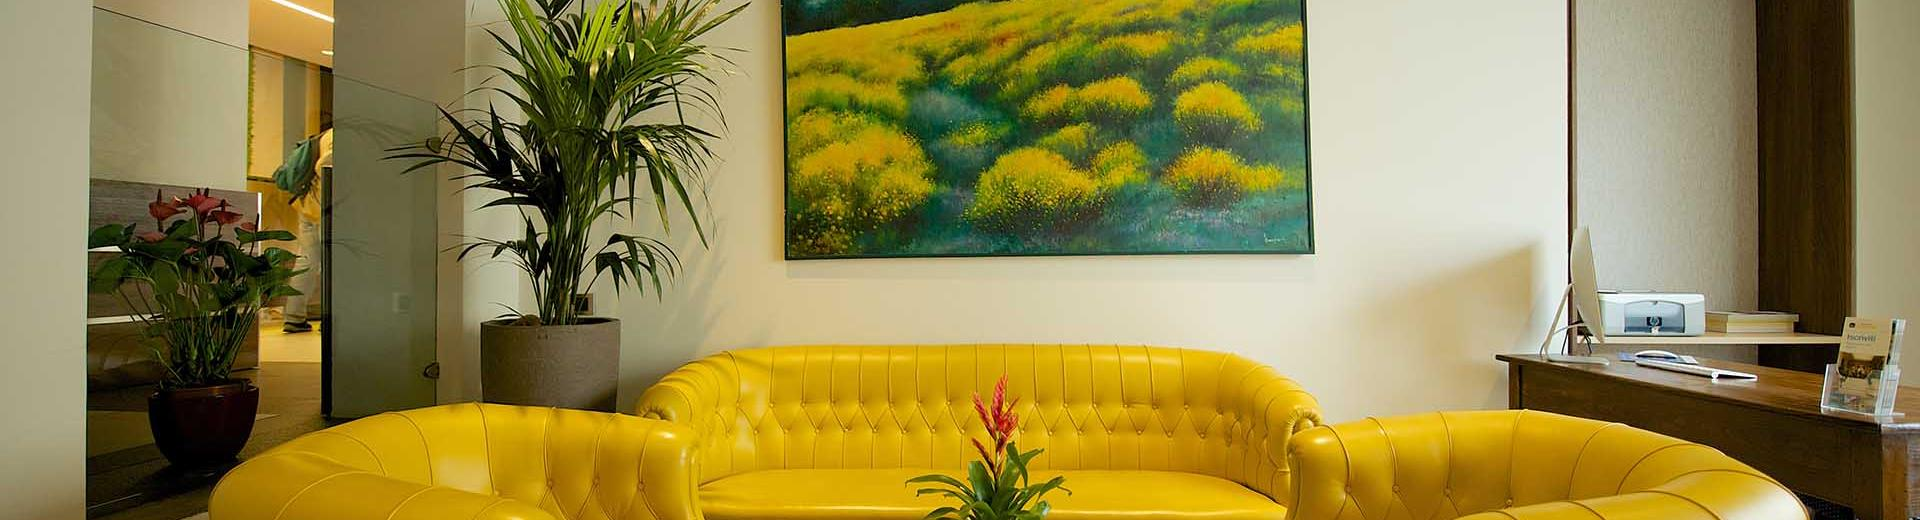 Services and hospitality in the BW Hotel Luxor, 3-star in Turin